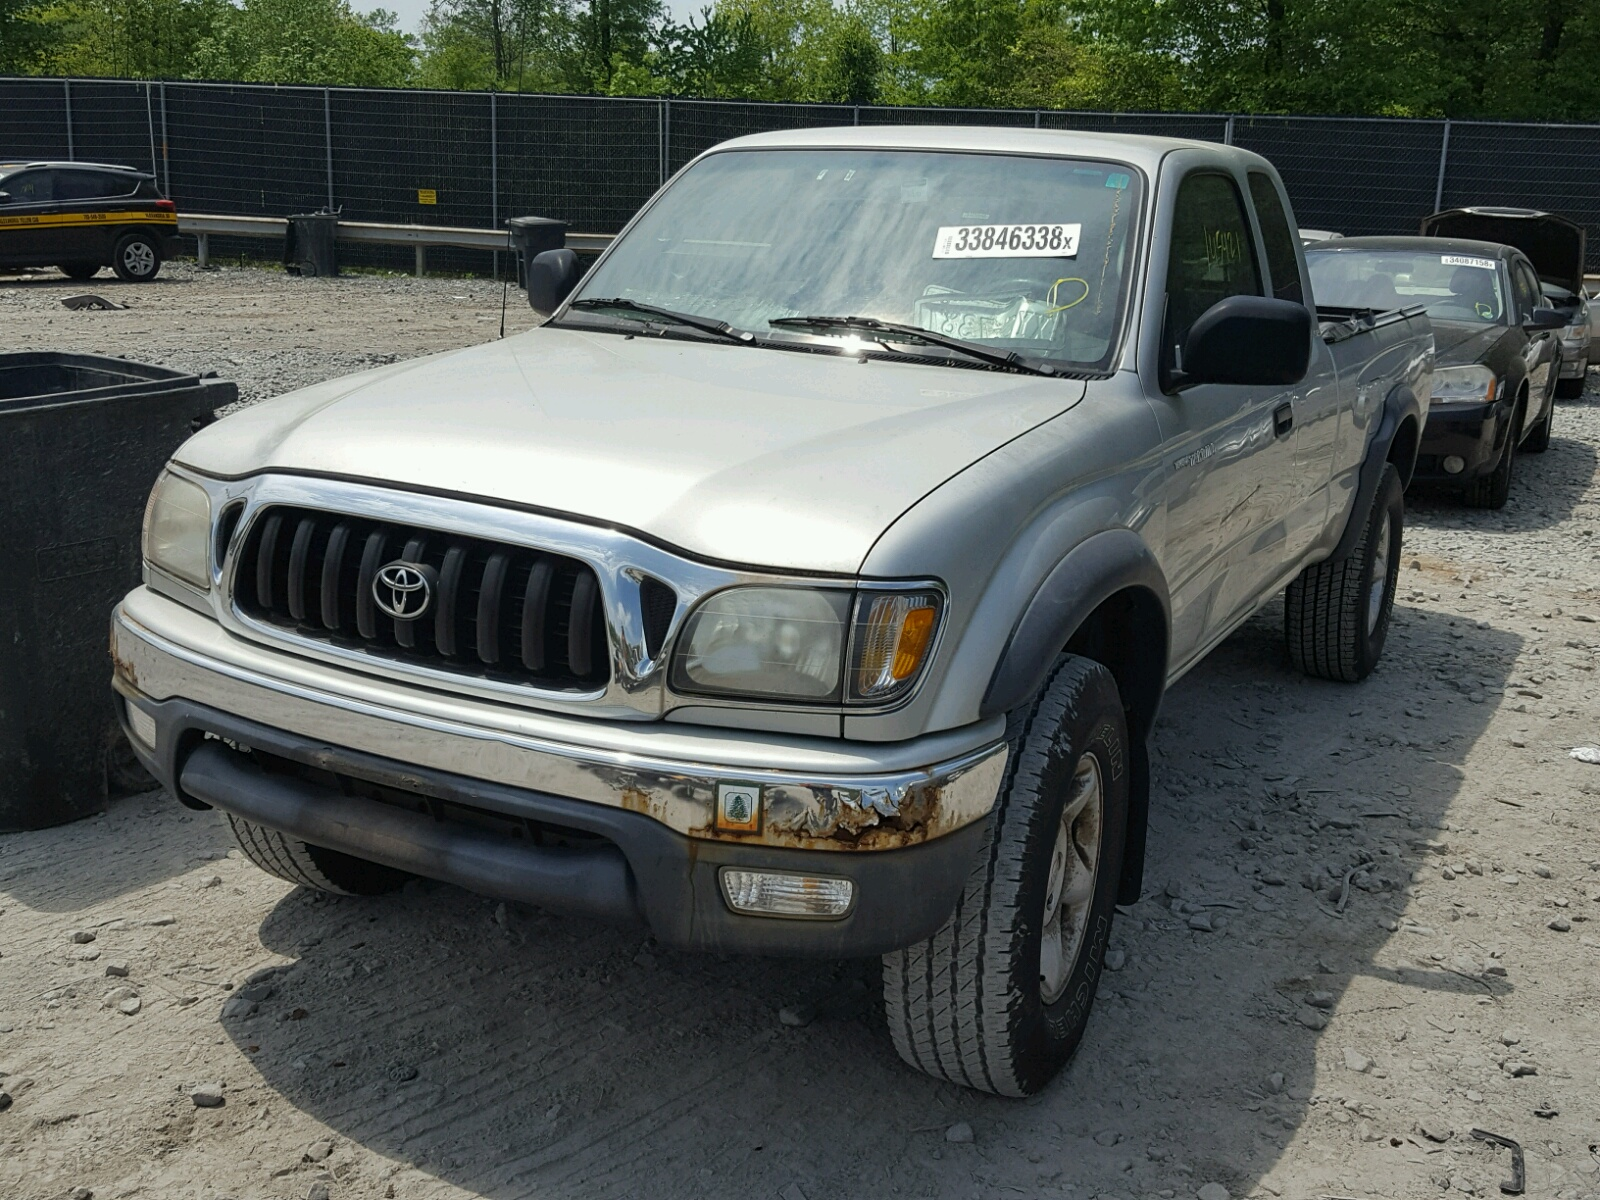 Copart Customer Service Number >> 2002 Toyota Tacoma Xtr 3.4L 6 in DC - Washington DC (5TEWN72N22Z125033) for Sale – AutoBidMaster.com